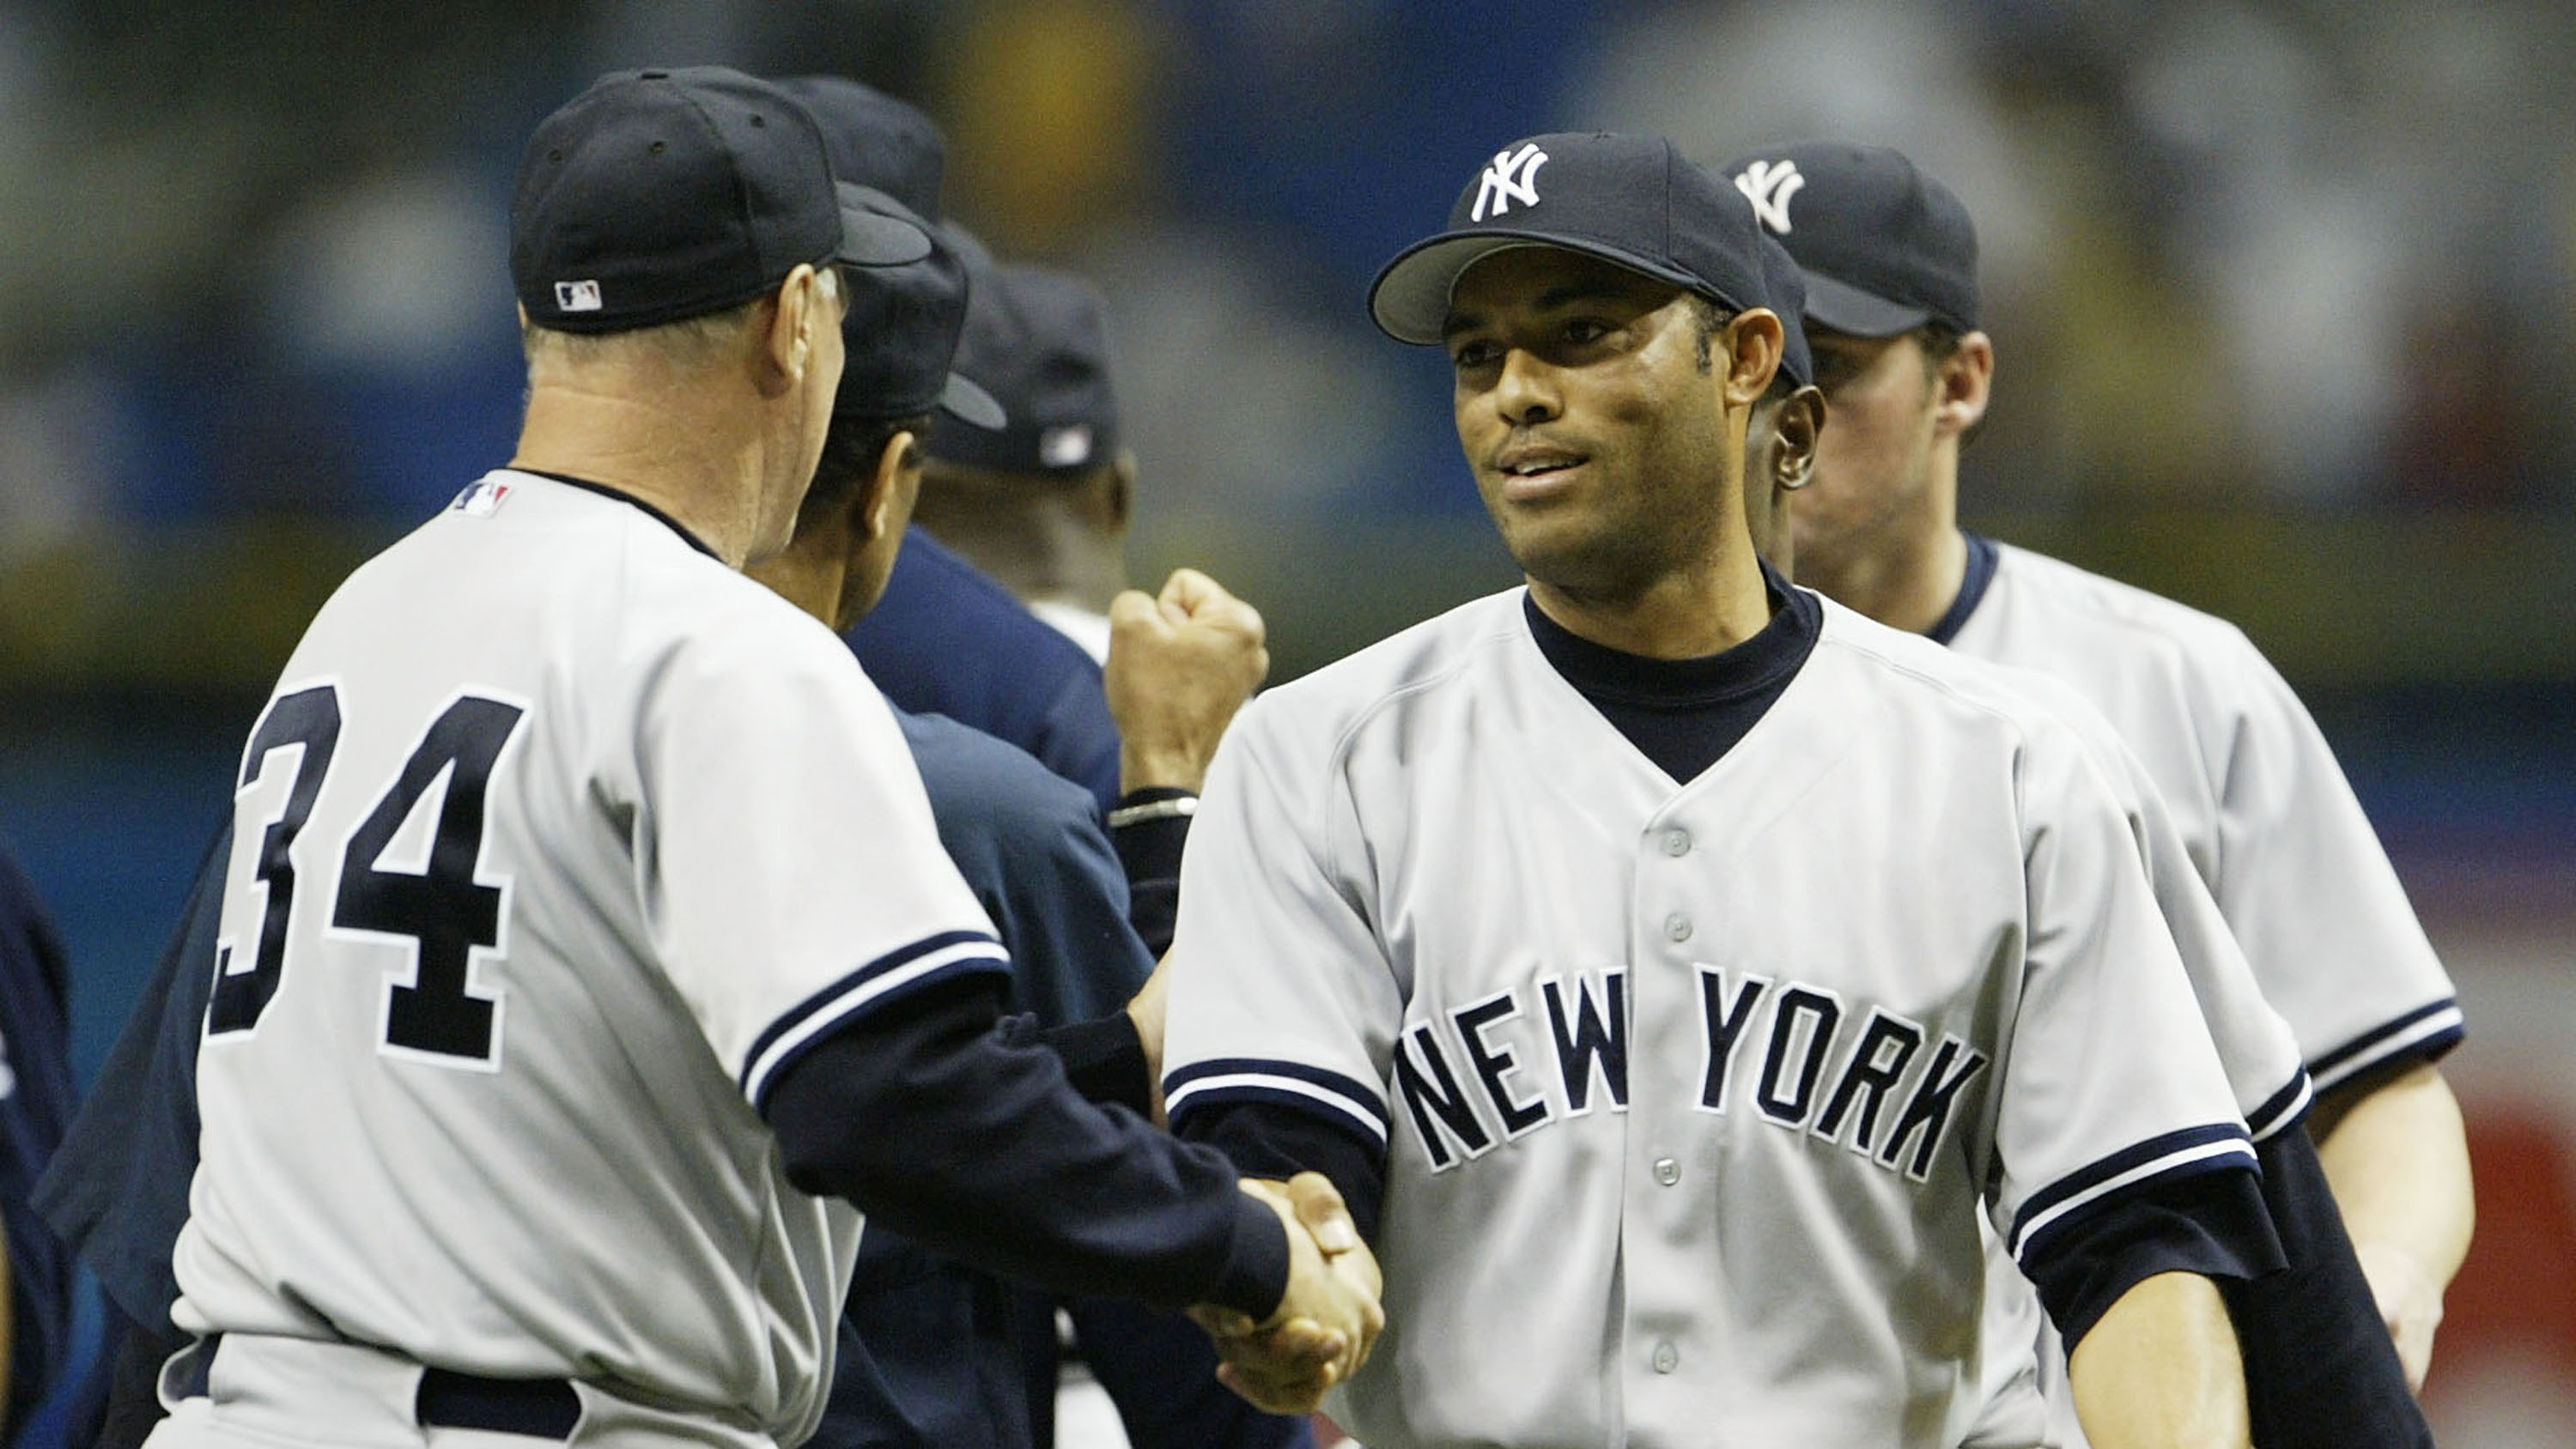 Mariano Rivera: Mel Stottlemyre named boat after Yankees P